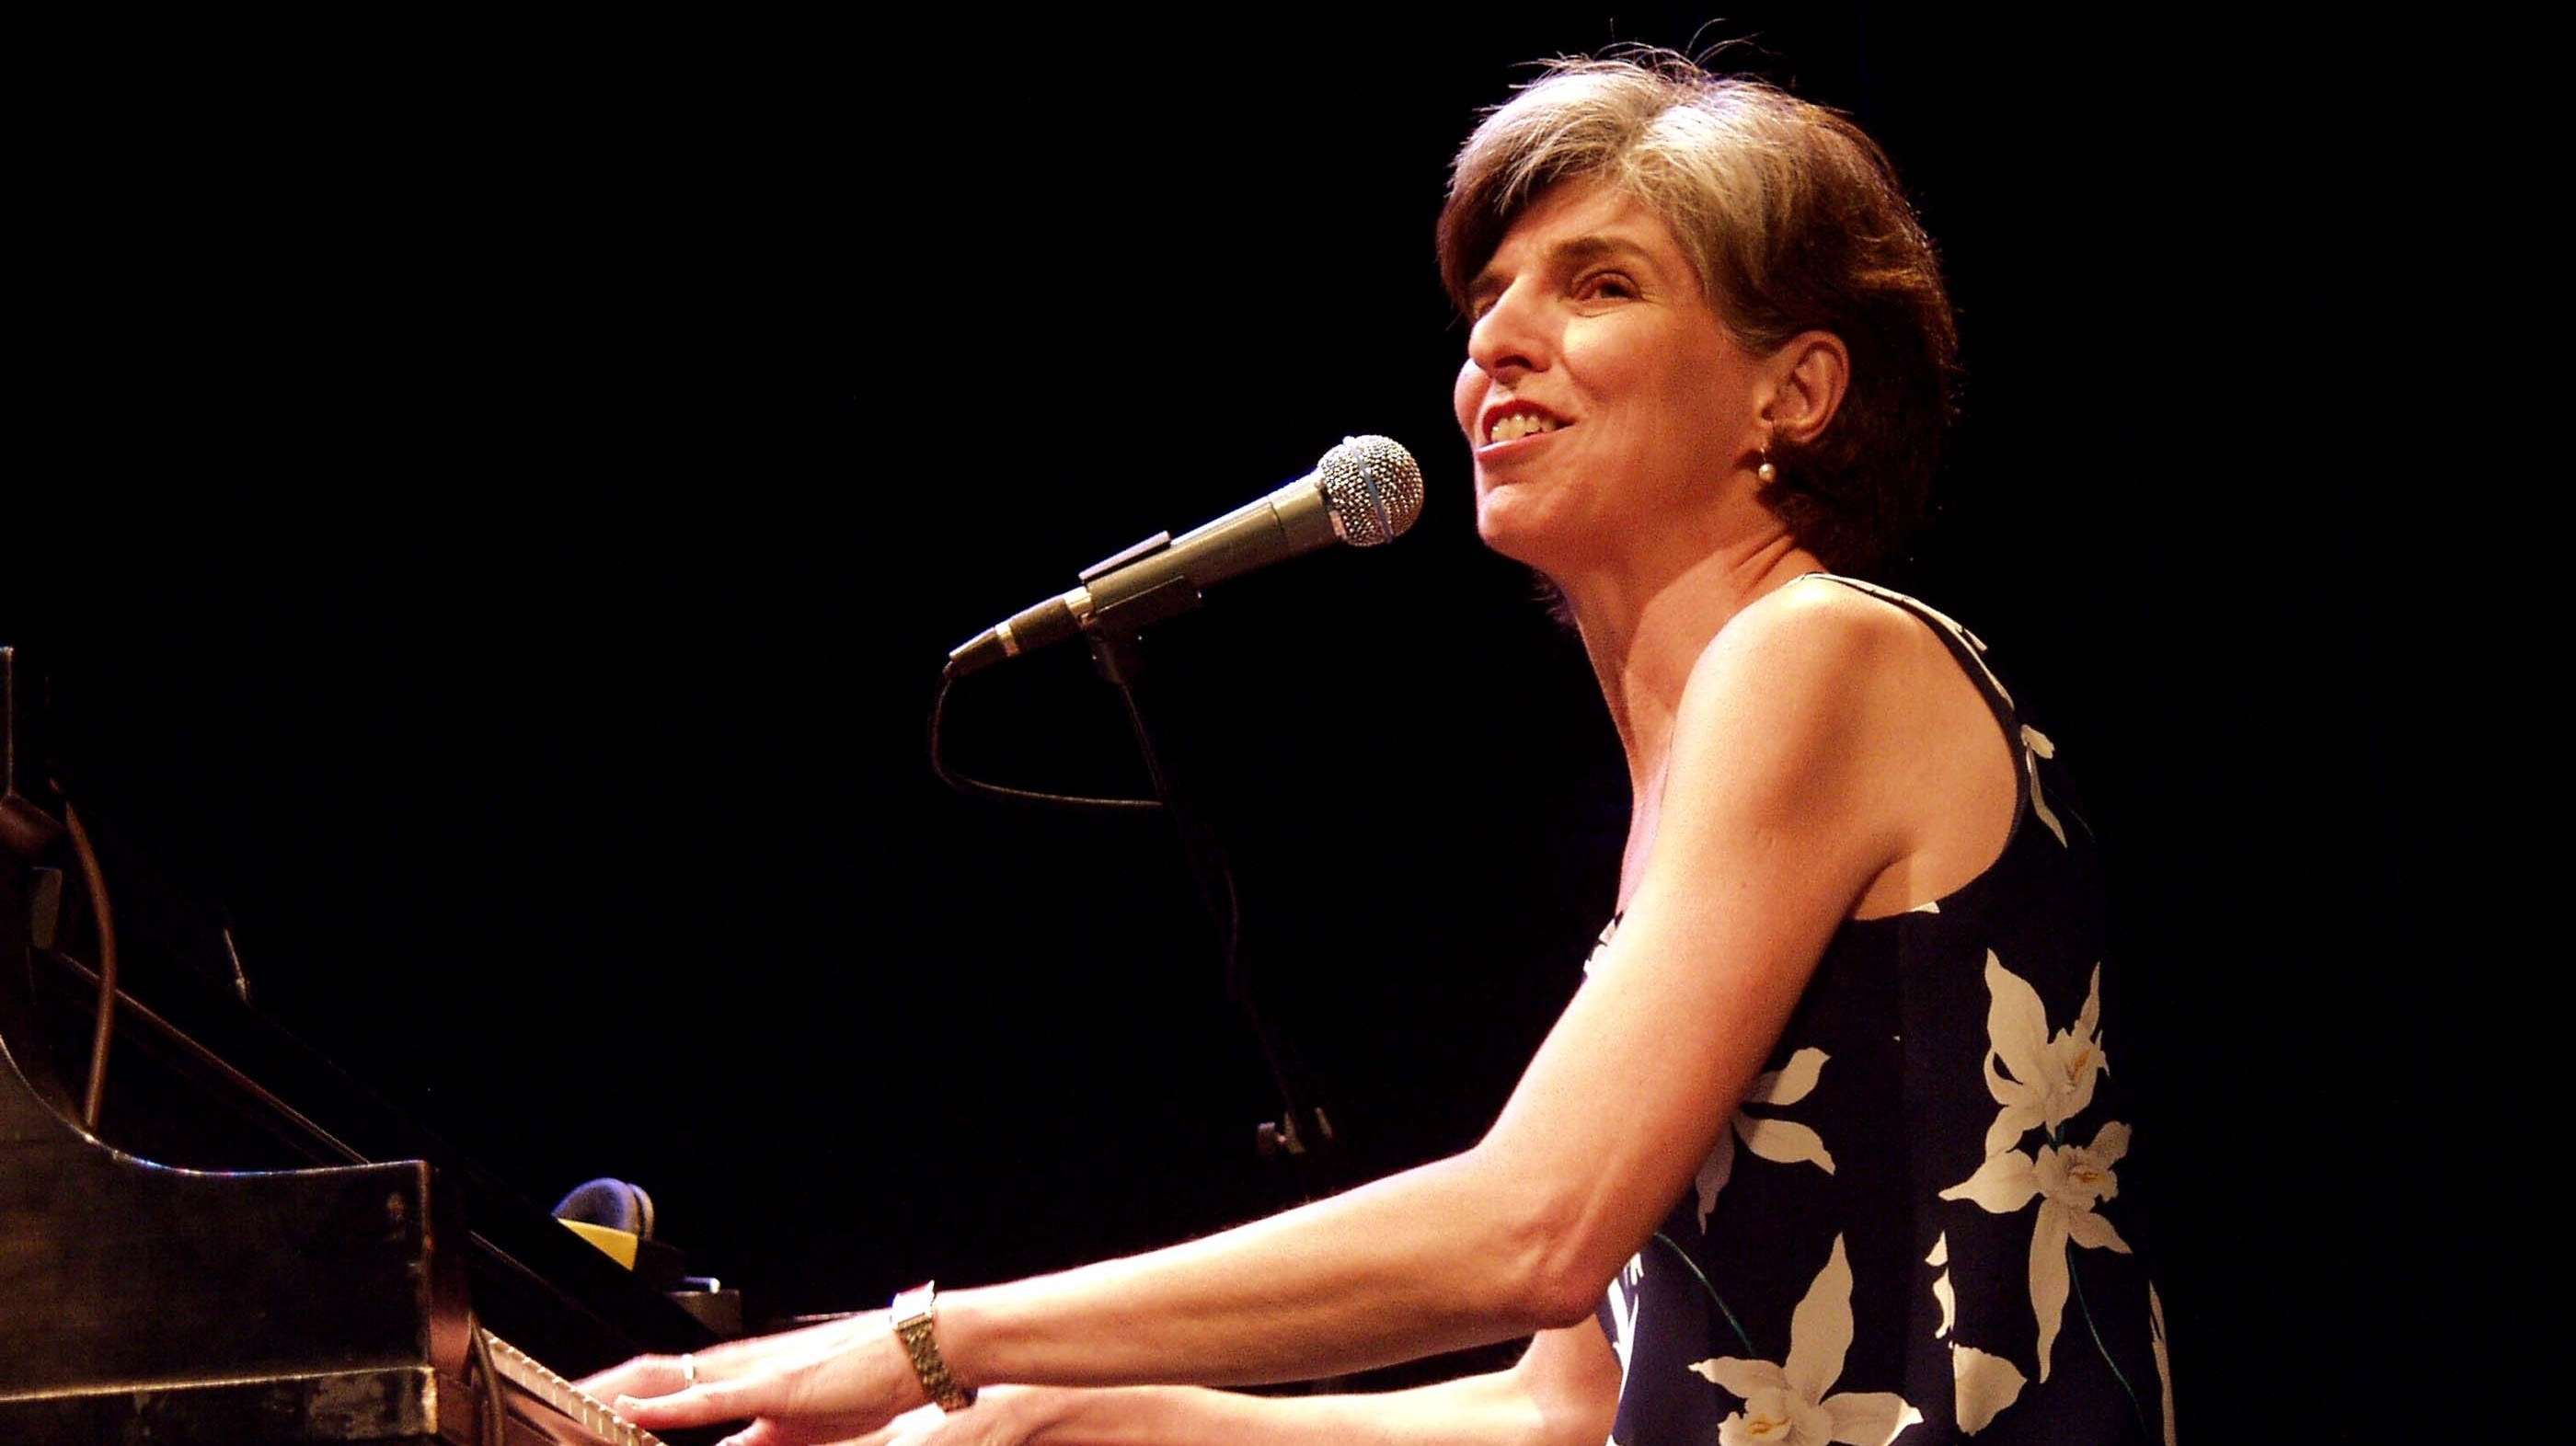 Marcia Ball: Still excited about the music